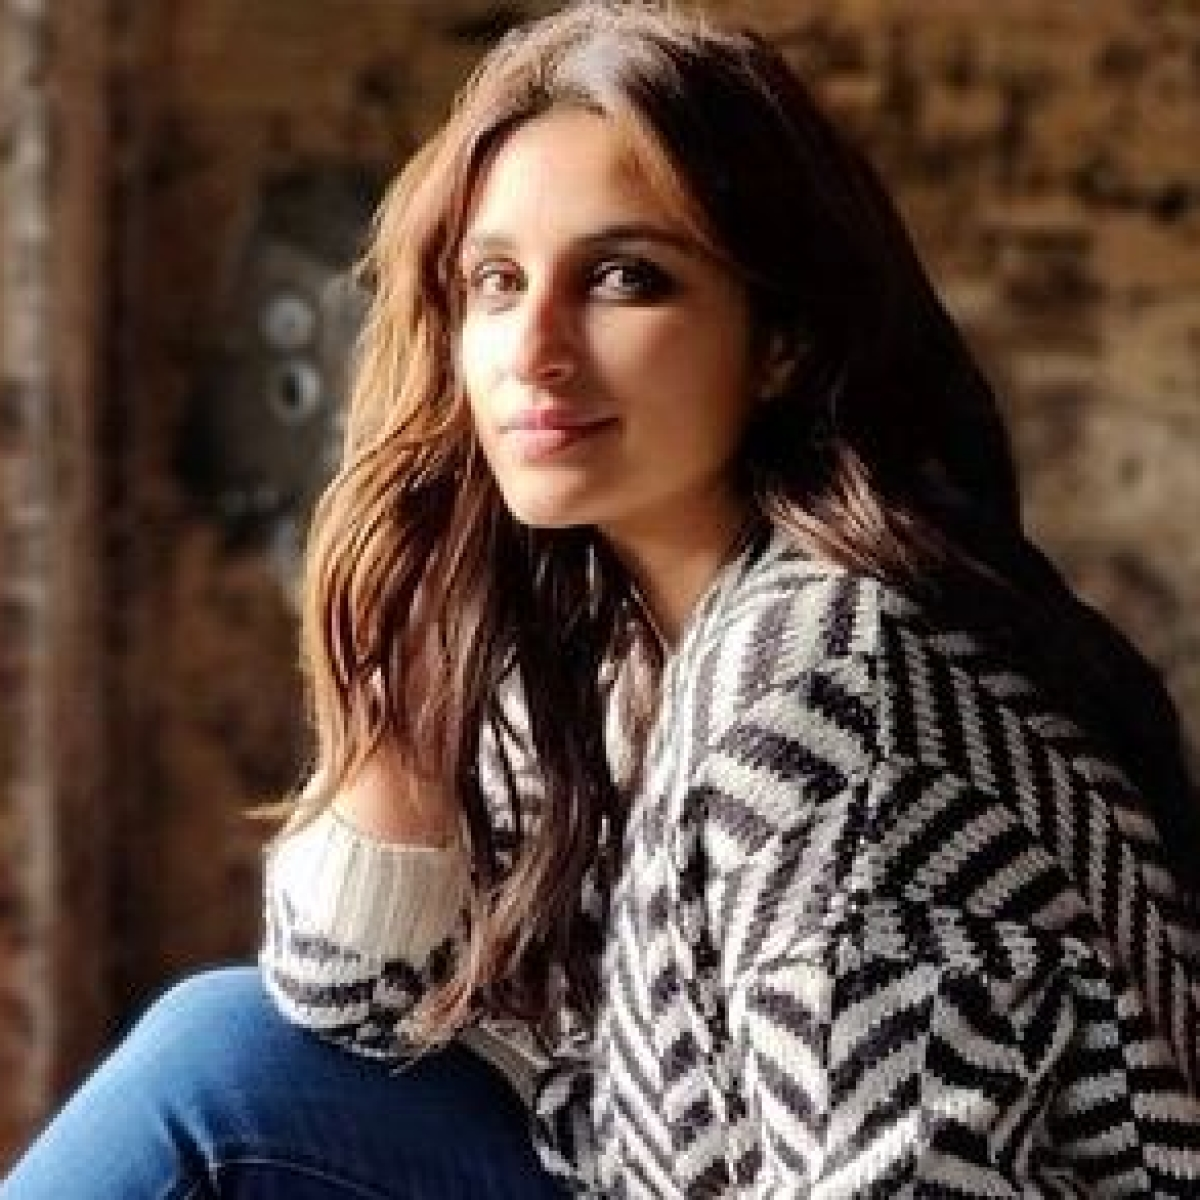 'Contractors don't talk to me properly': Parineeti Chopra on facing sexism while renovating her house